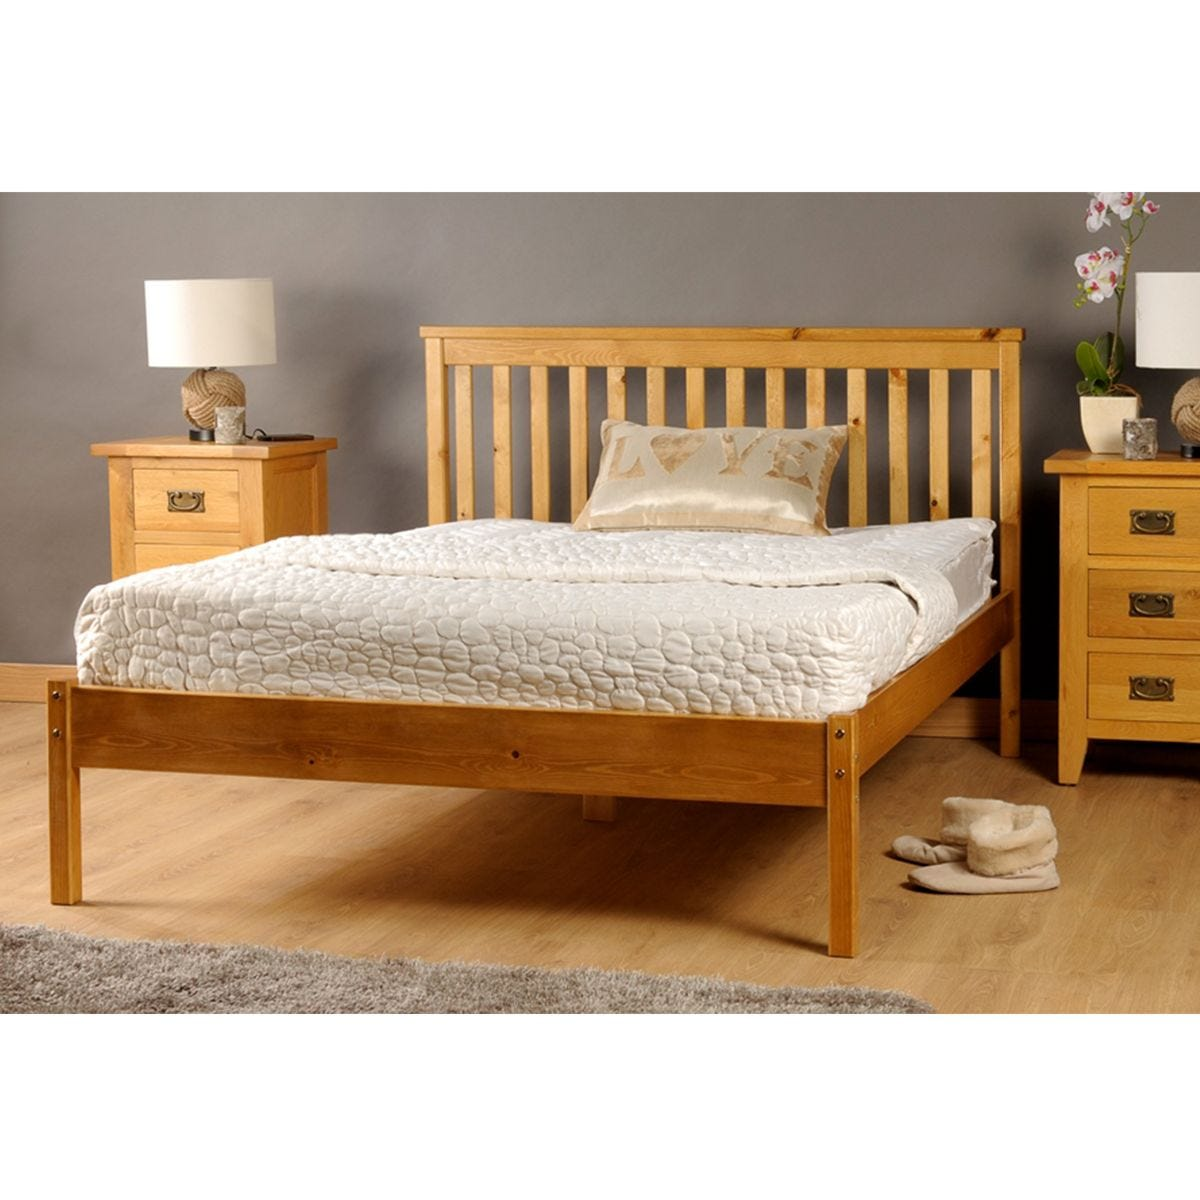 Riga King Bed Frame - Caramel